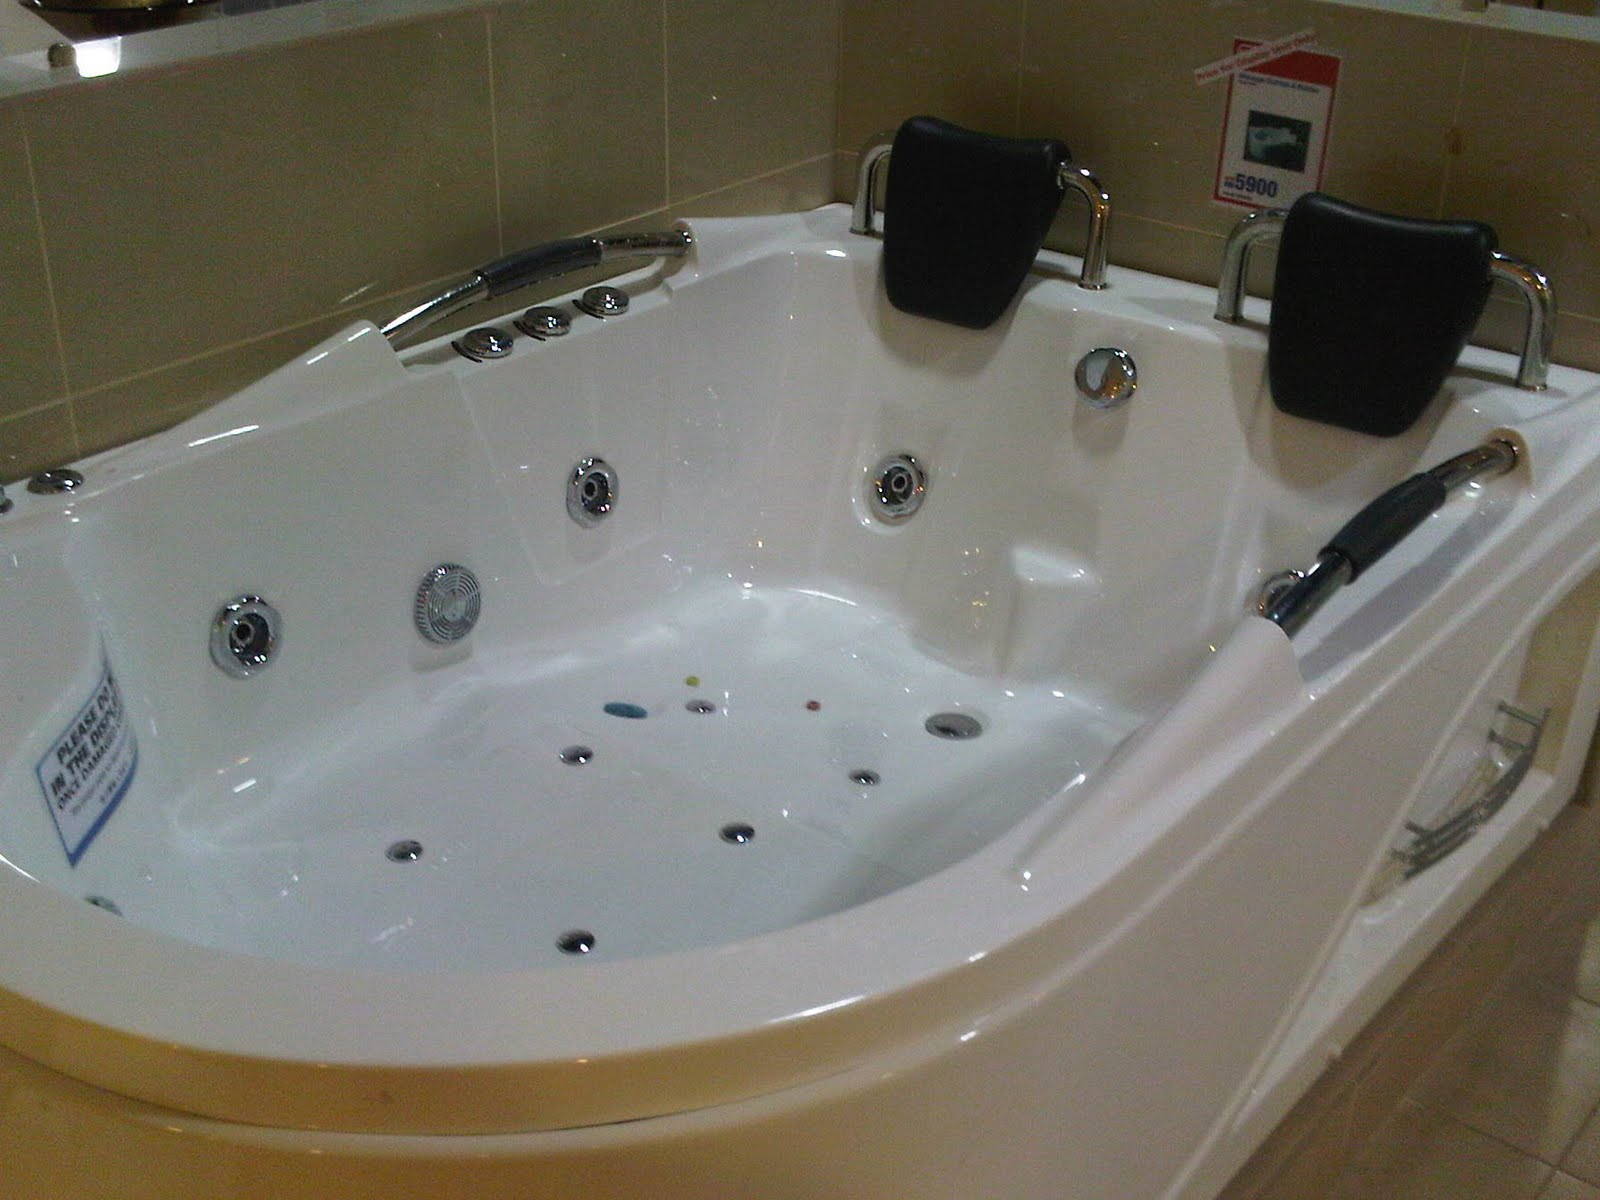 Double Whirlpool Tub - Home is Best Place to Return